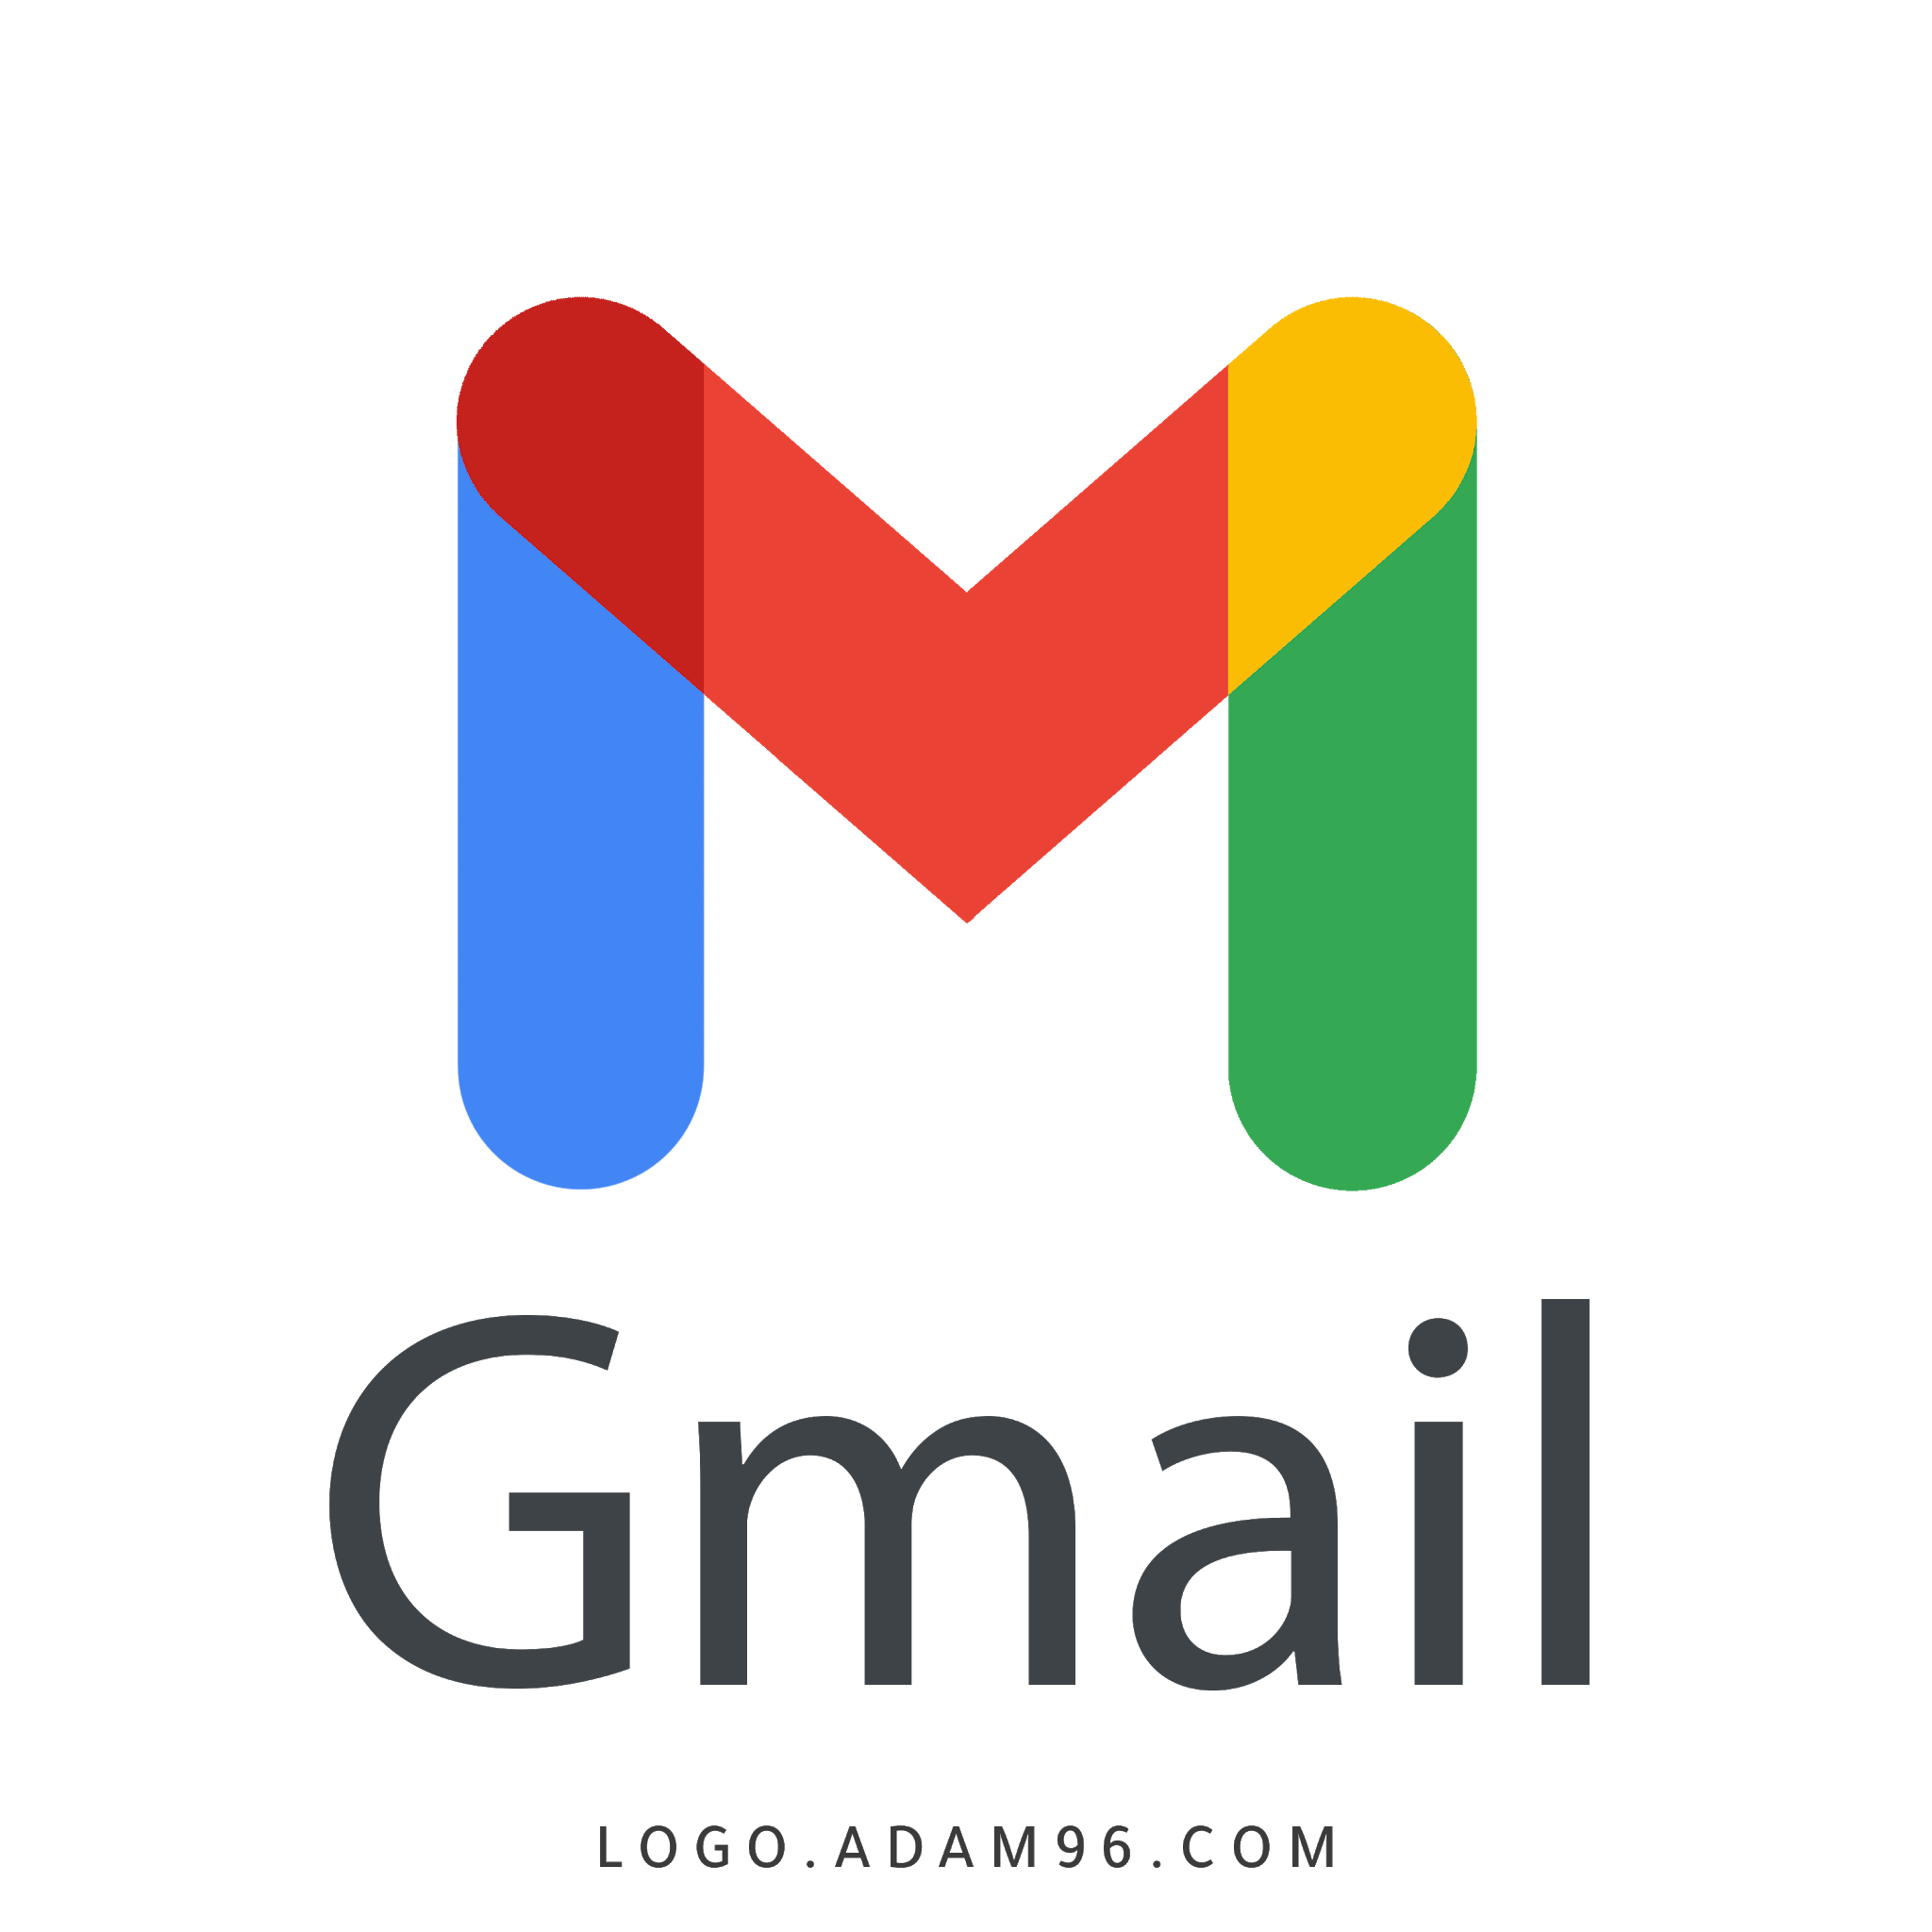 Download The New G mail Logo Original Logo PNG